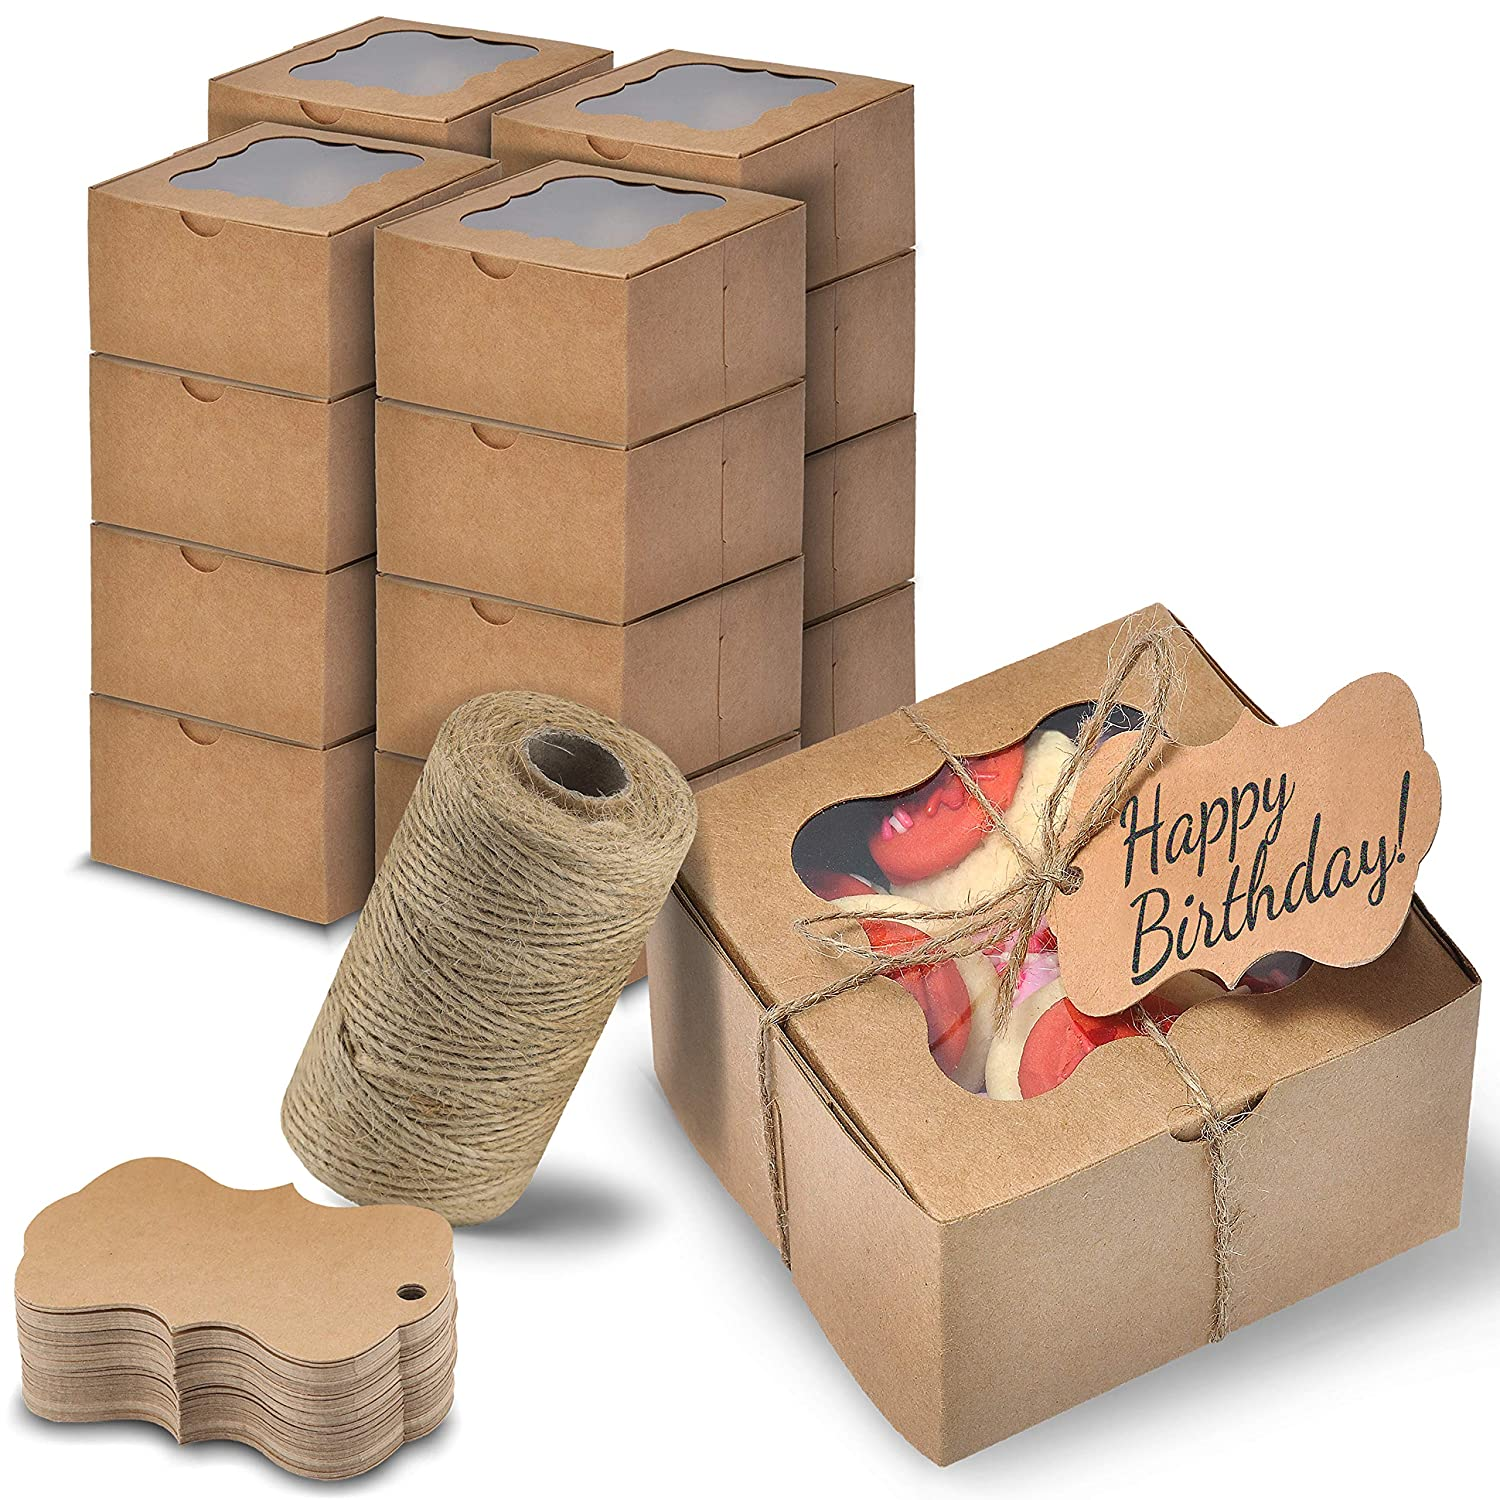 Golden Ber Kraft Pastry Boxes with Window - 50pcs. 4x4x2.5 inches/Can Be Used as Treat Boxes, Small Bakery Boxes, Gift Boxes, Dessert Boxes, Cookie Boxes, Strawberry Box, Candy Boxes Packaging/Brown, Easy to Assemble/Includes Jute Twine and Tags